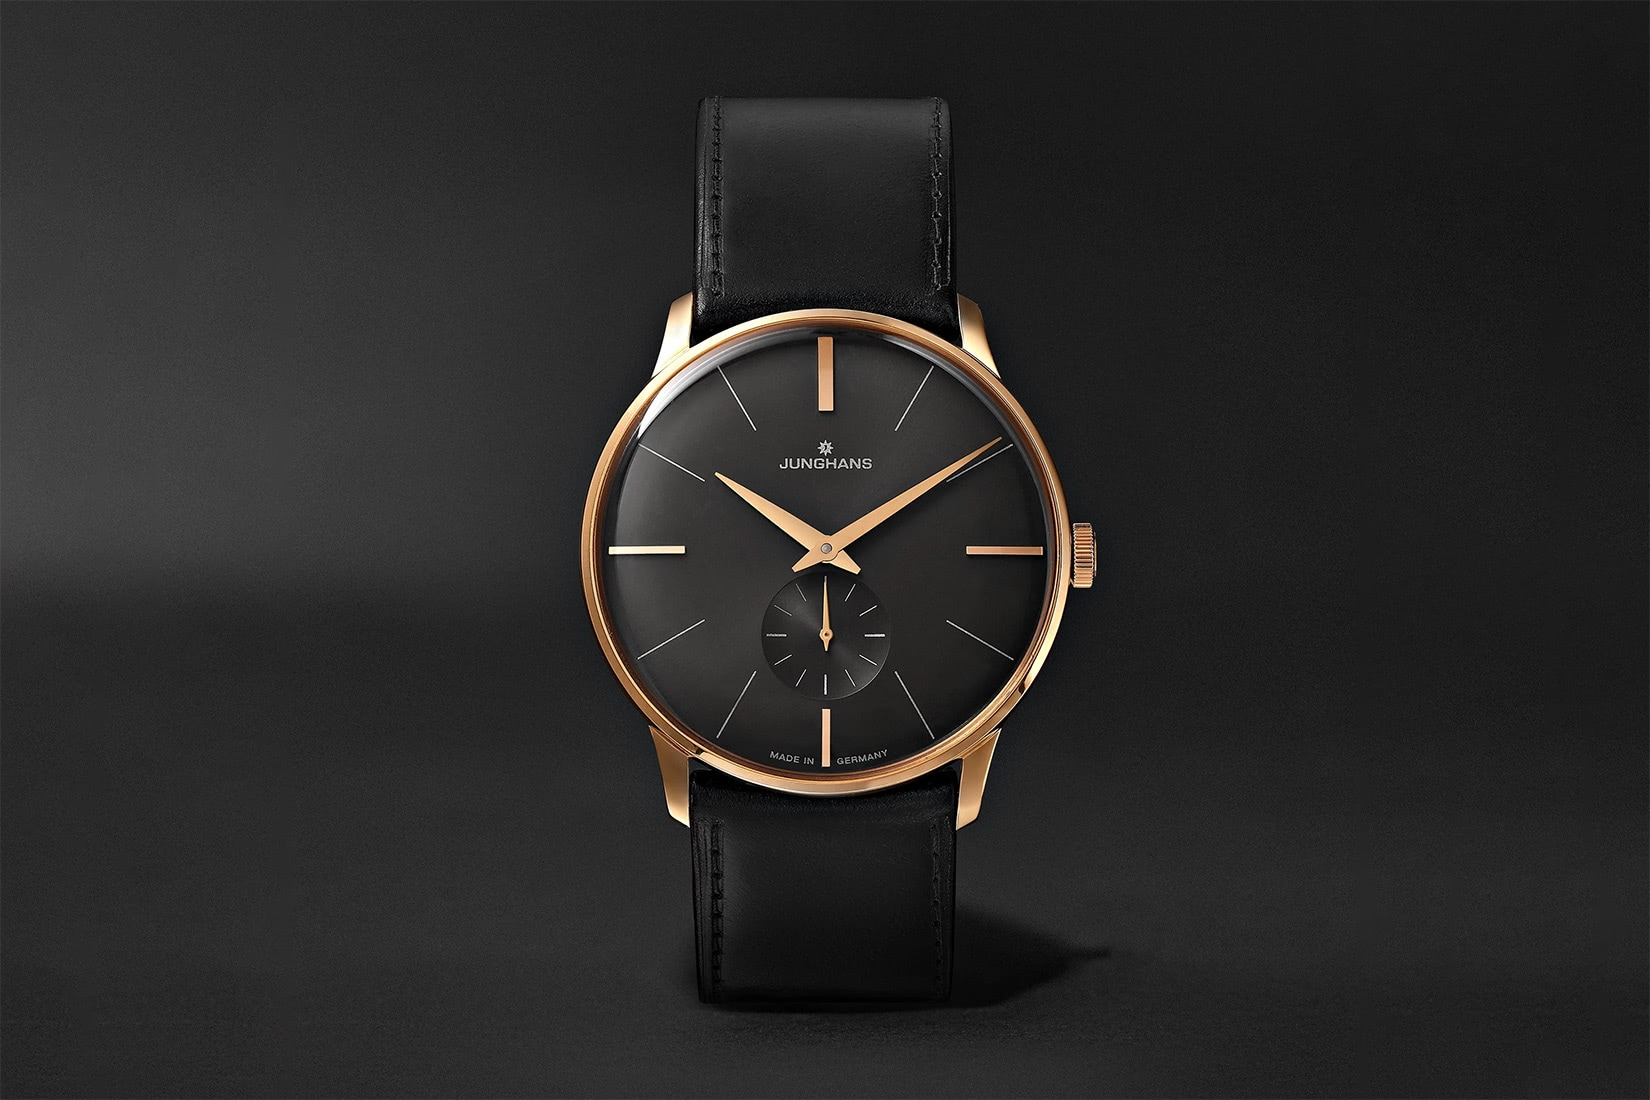 Personalized Watches for Any Occasion